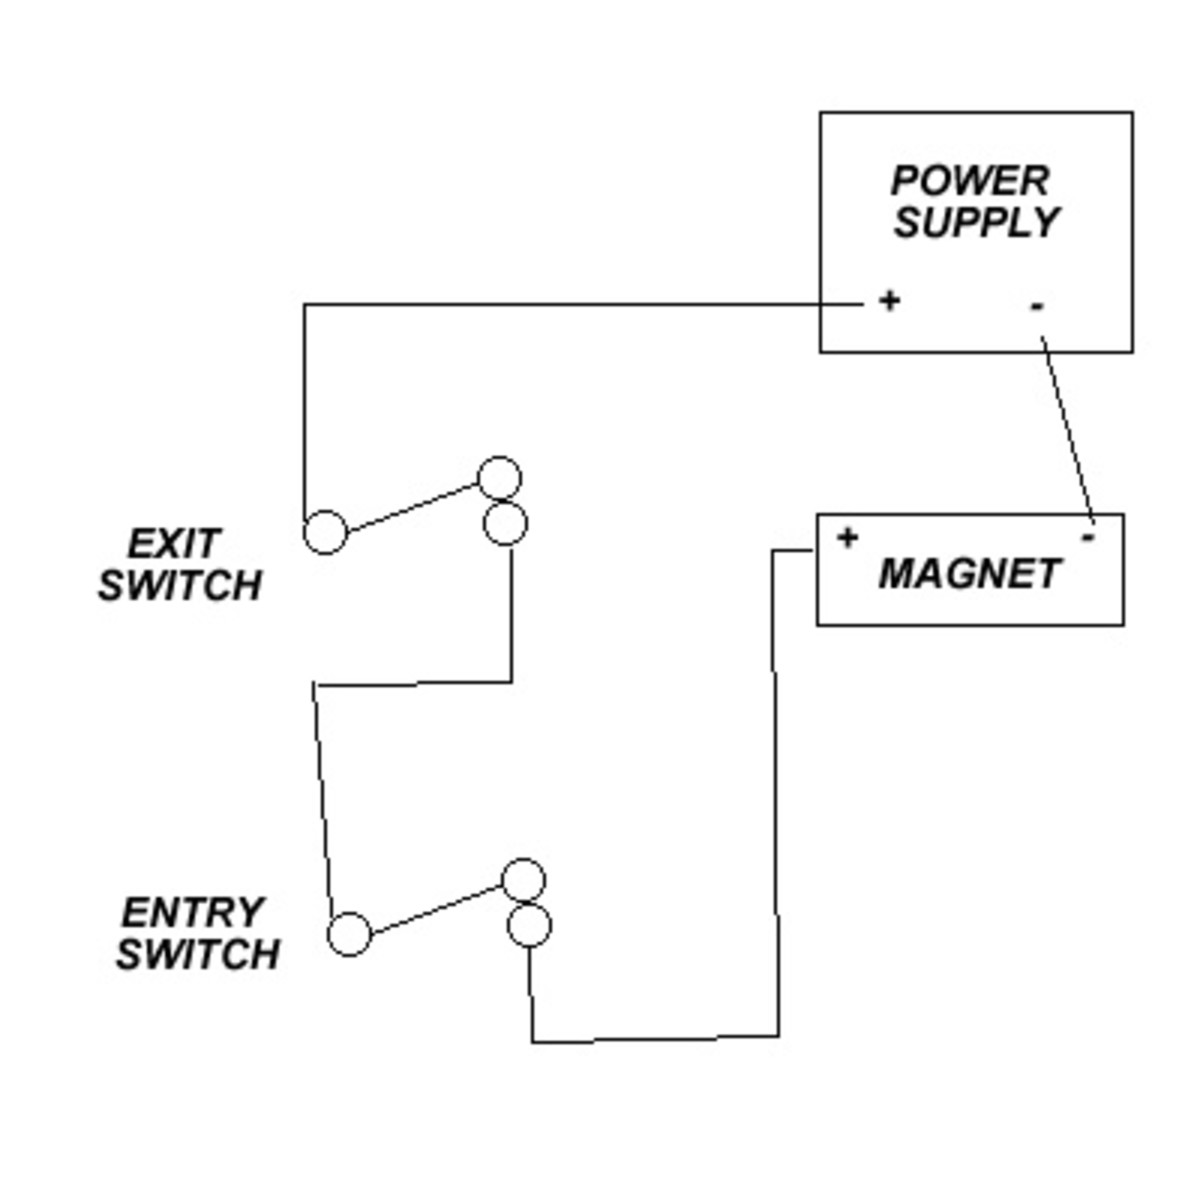 532038 basic magnetic door lock system hubpages wiring diagram for magnetic door lock at eliteediting.co